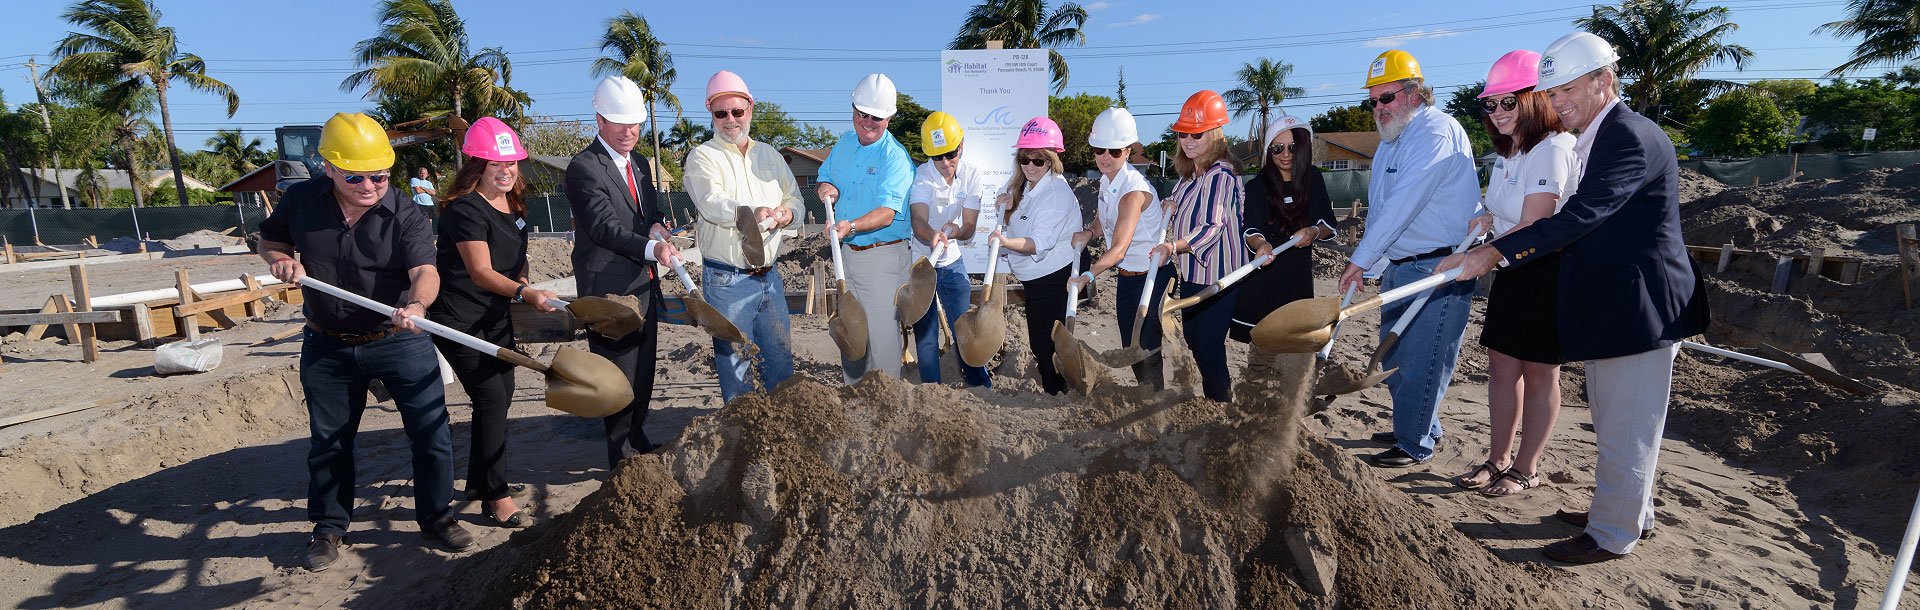 Habitat for Humanity Ground Breaking